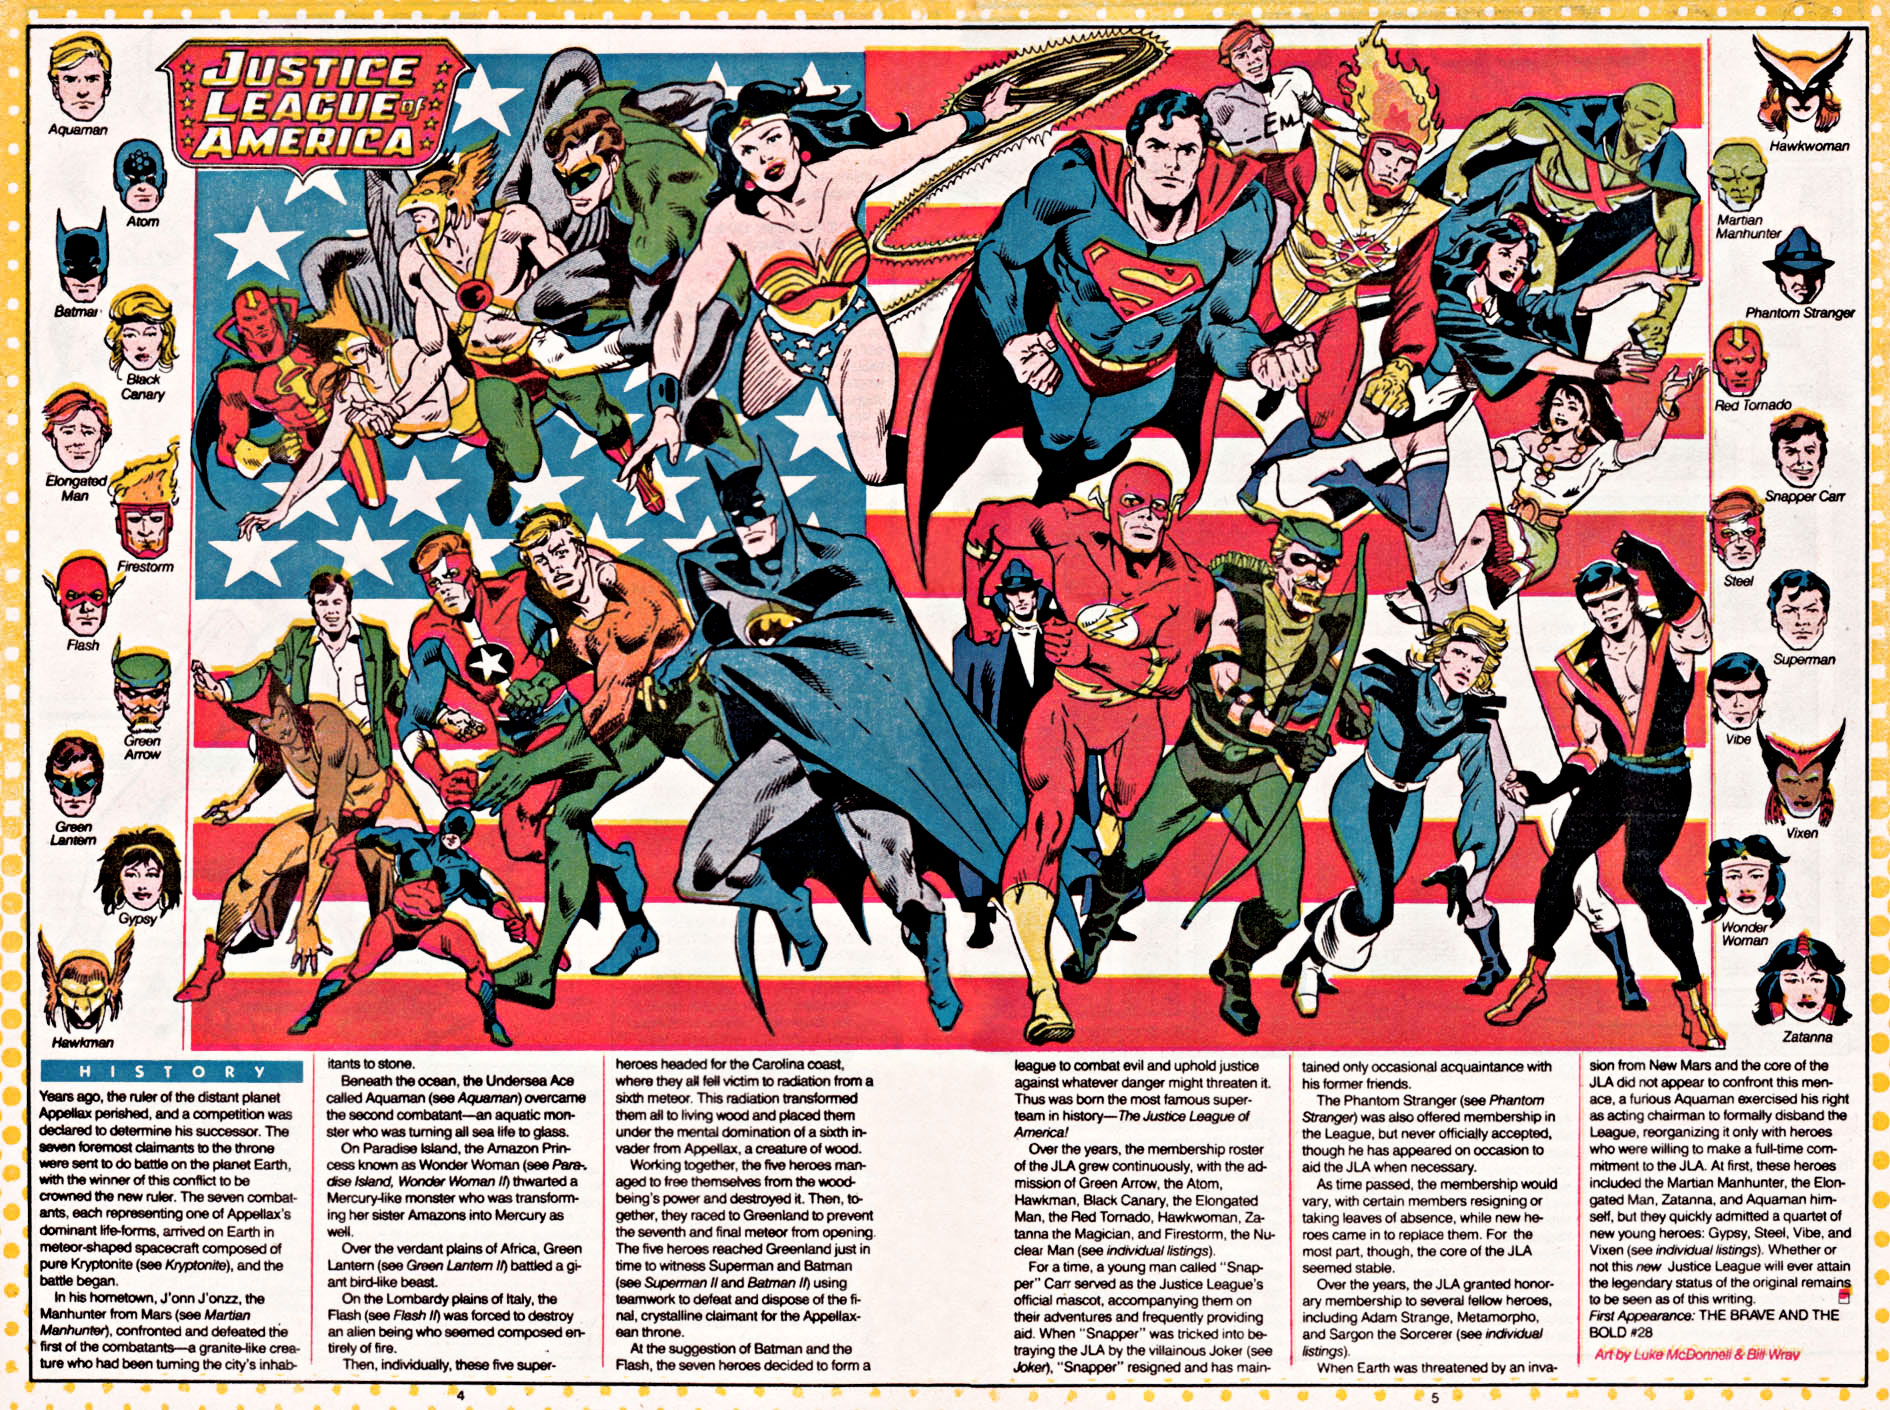 Justice League of America by Luke McDonnell & Bill Wray